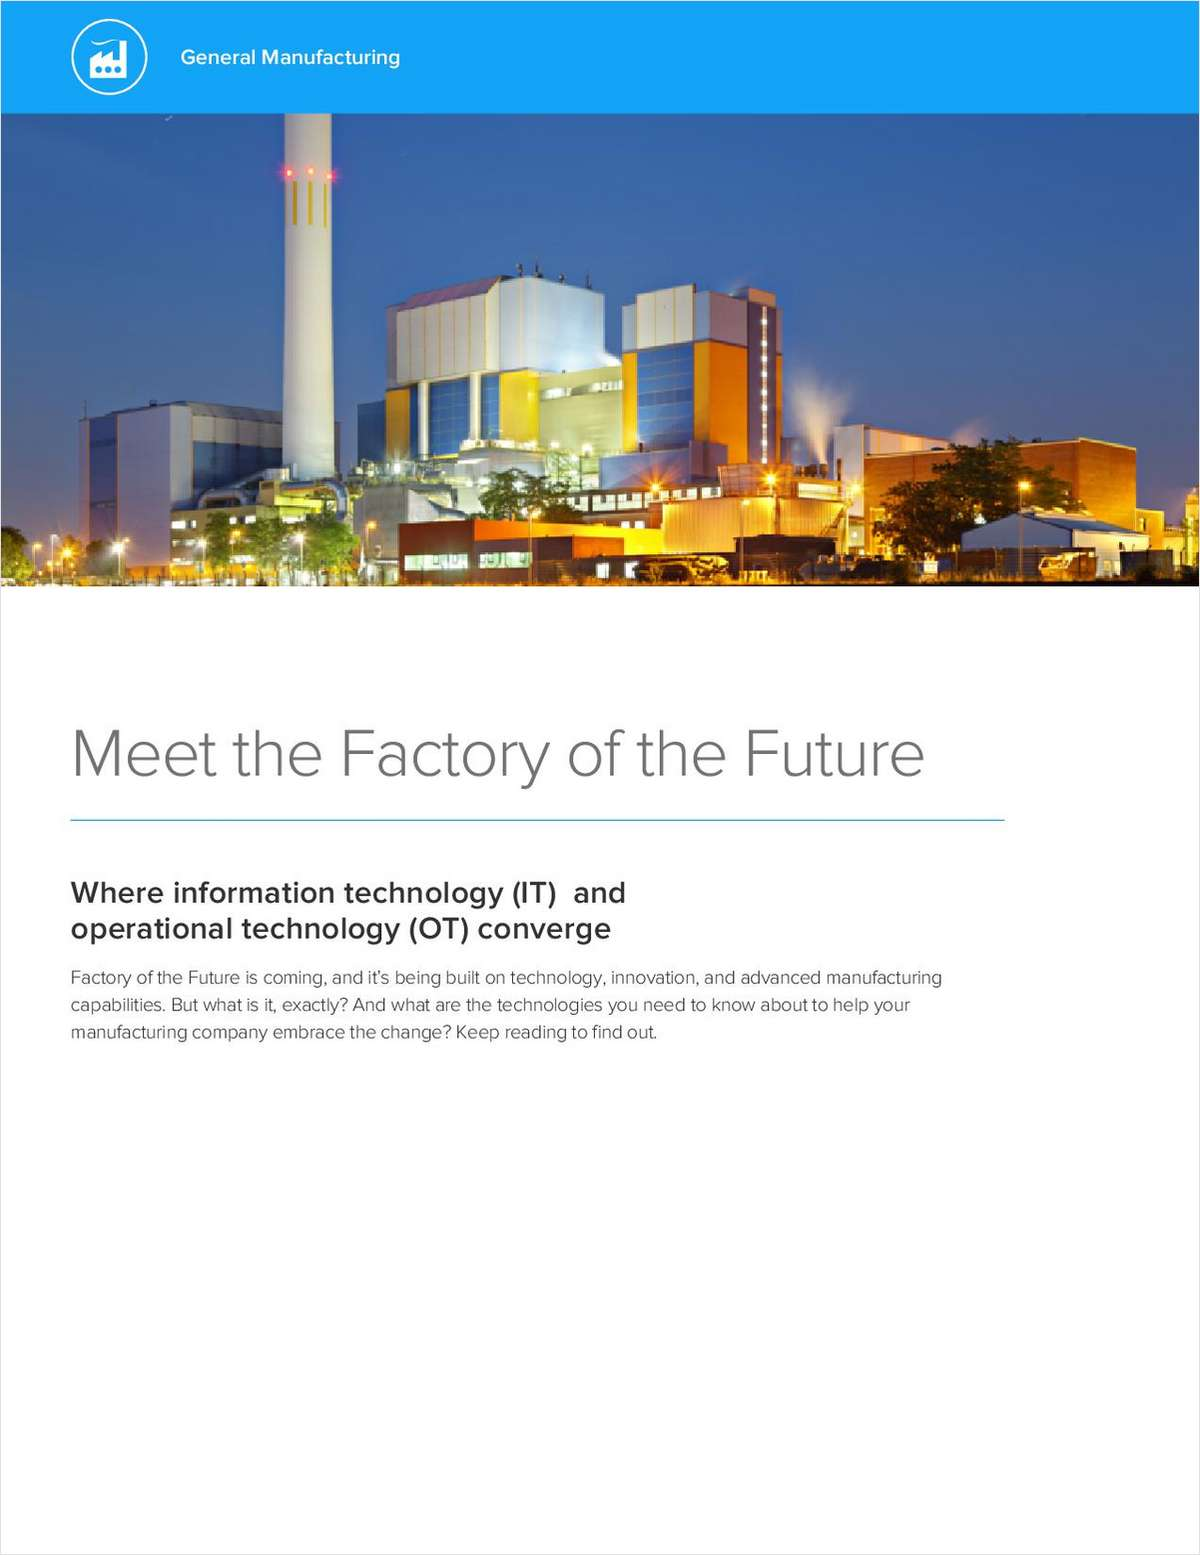 Meet the Factory of the Future